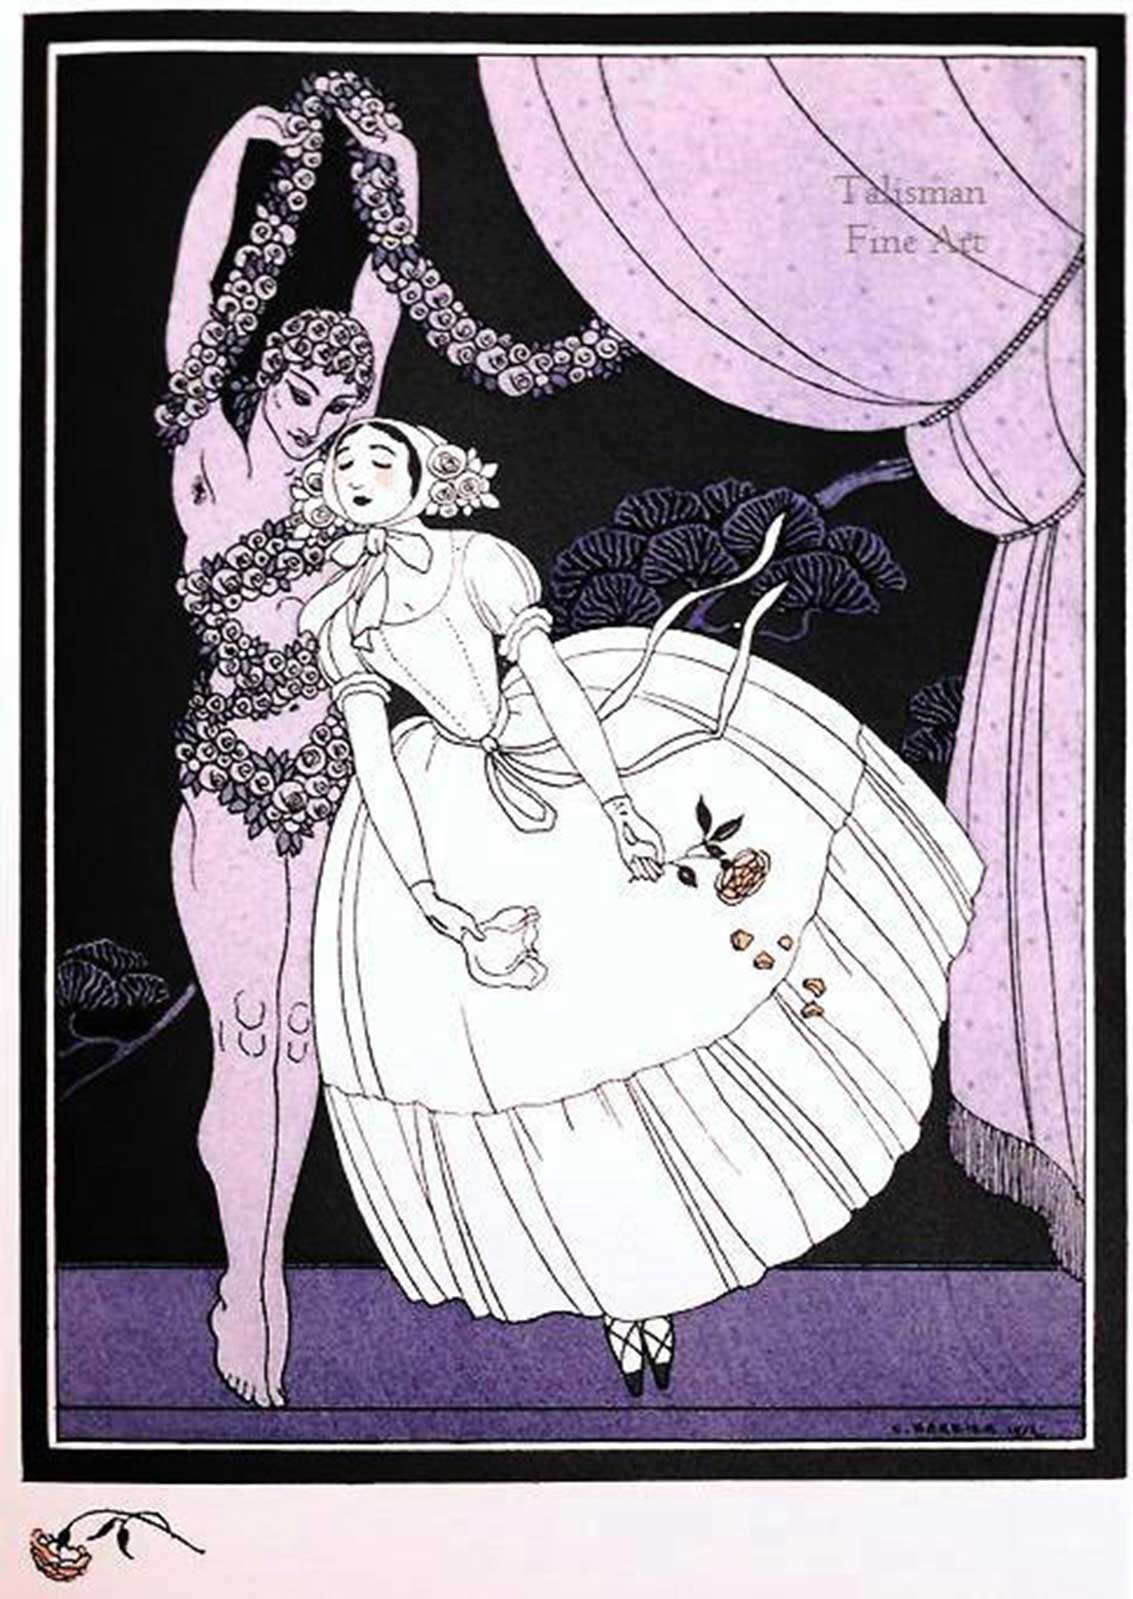 Talusman Fine Art George Barbier pochoir of Tamara Karsavina and Vaslav Nijinsky in Le Spectre de la Rose SOLD